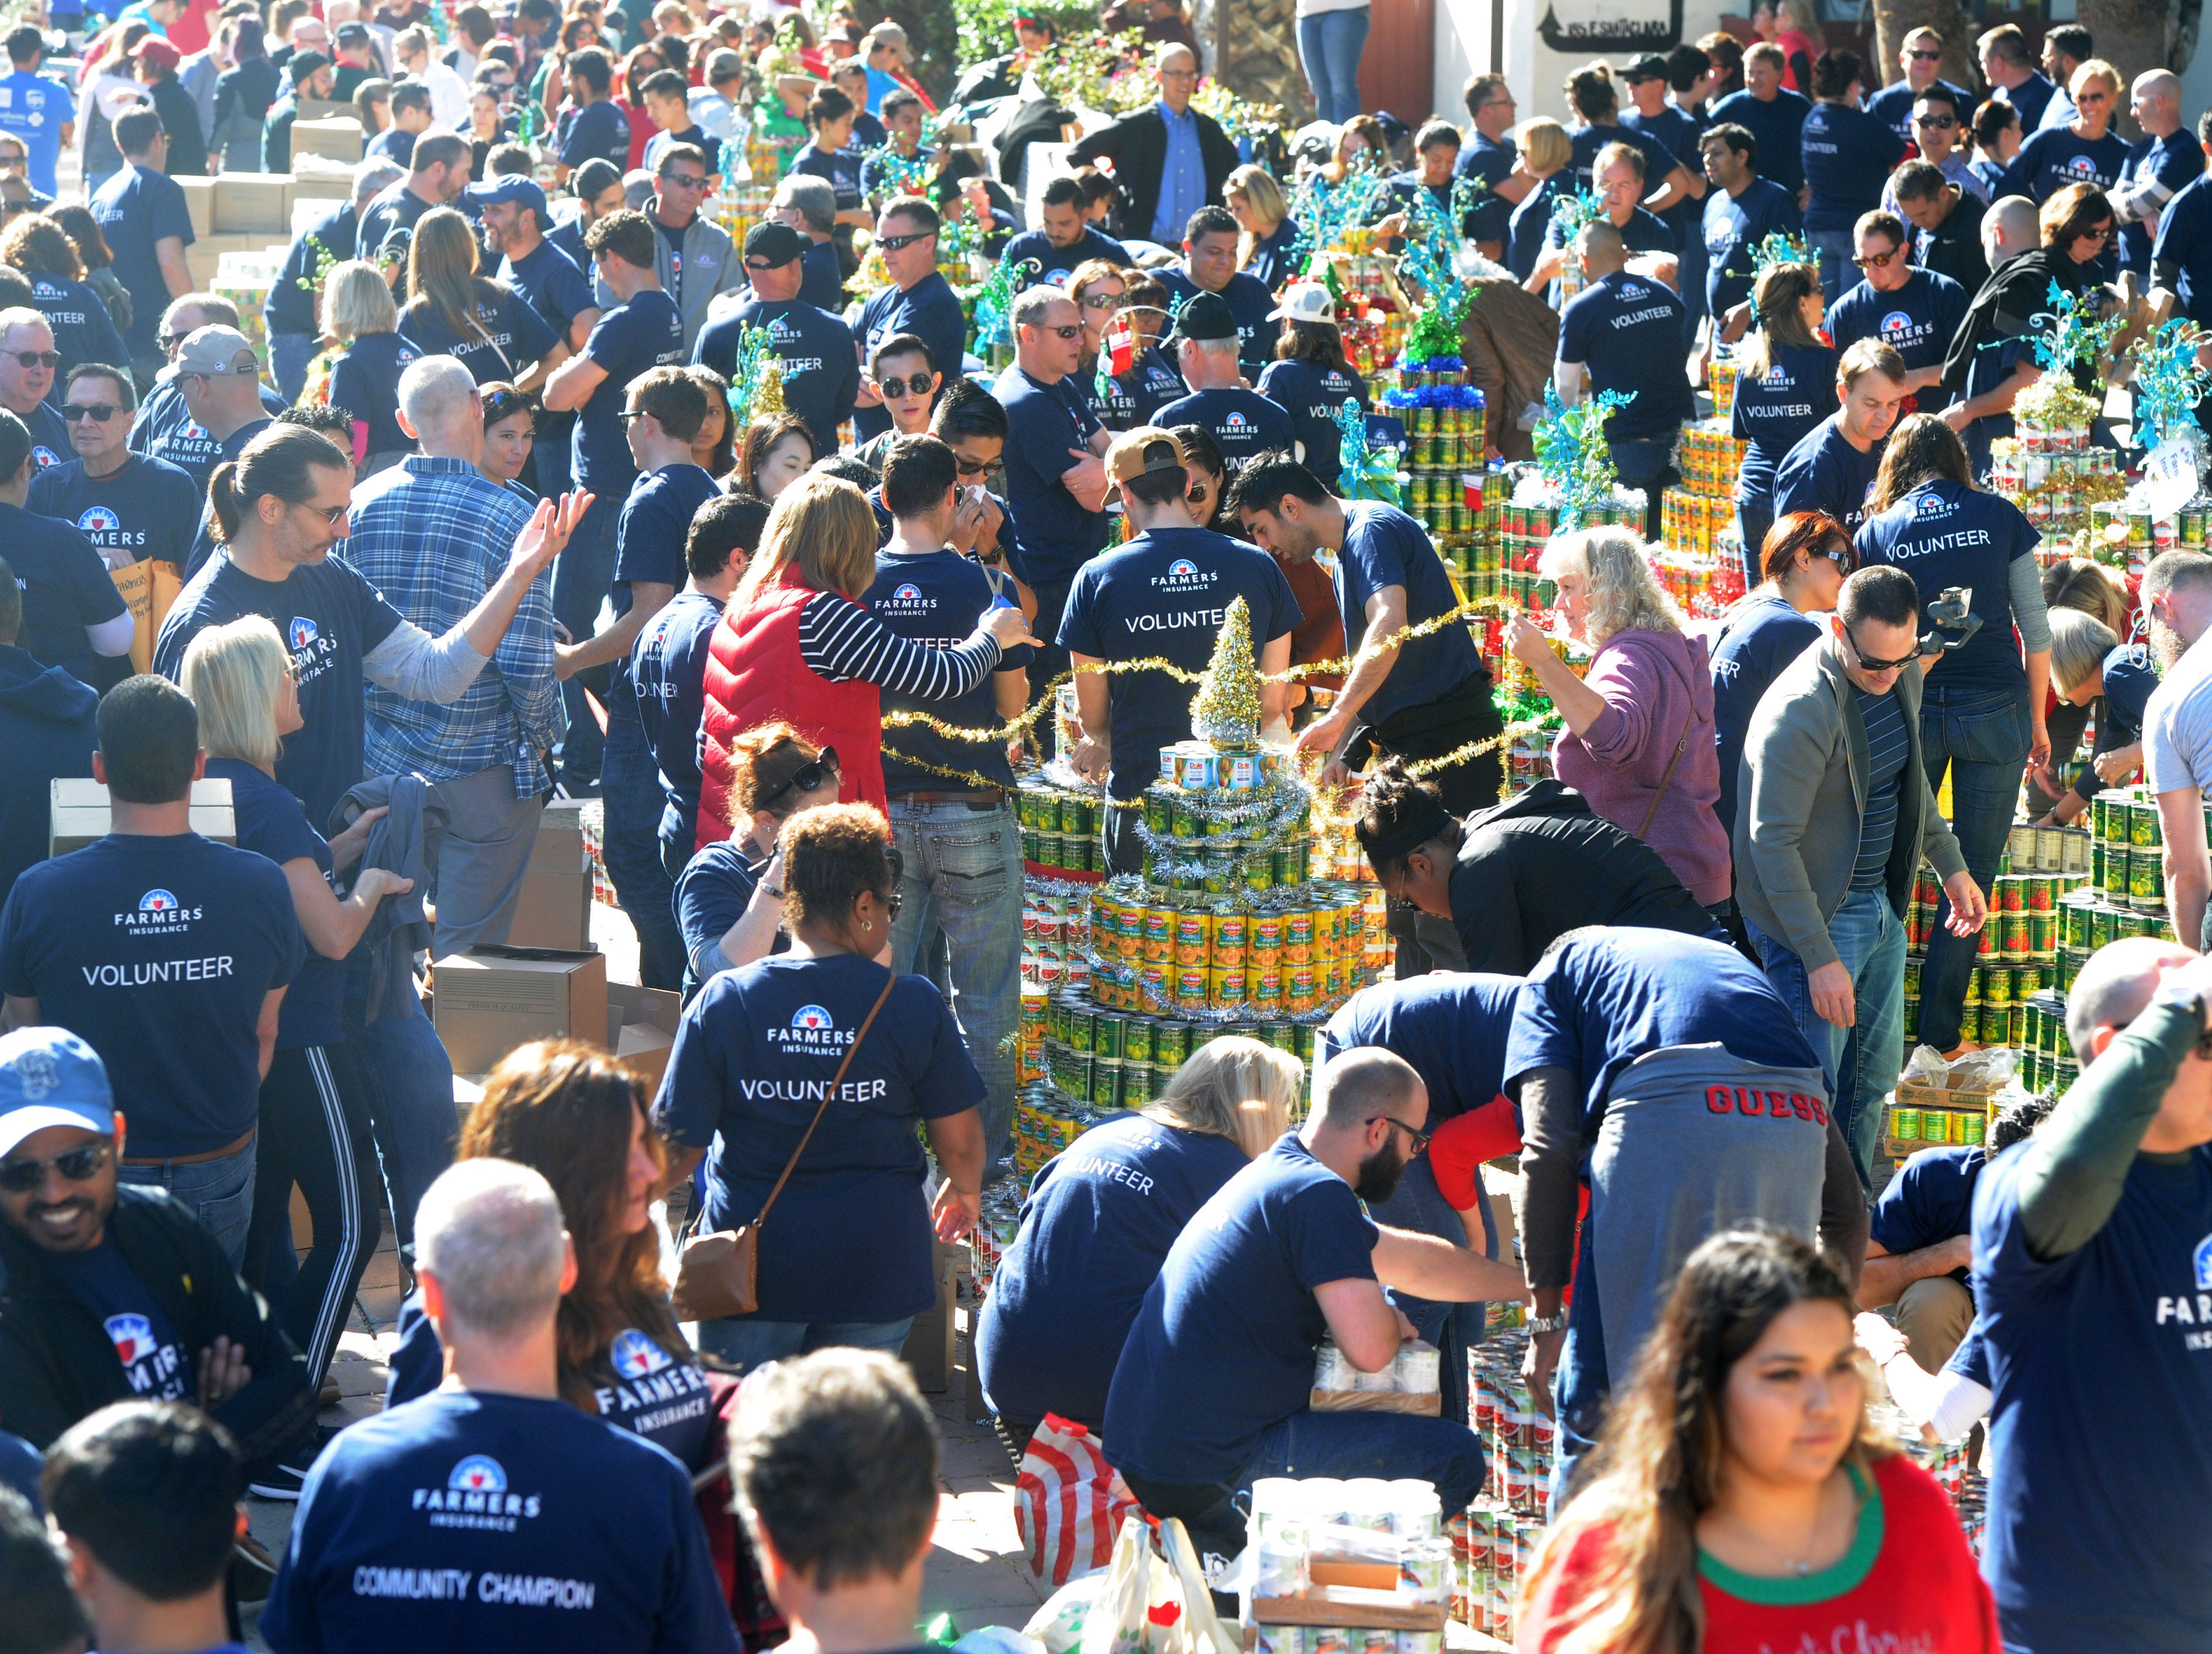 Volunteers from various organizations help build the can trees at FOOD Share's annual CAN-tree food drive in downtown Ventura at Figueroa Plaza.